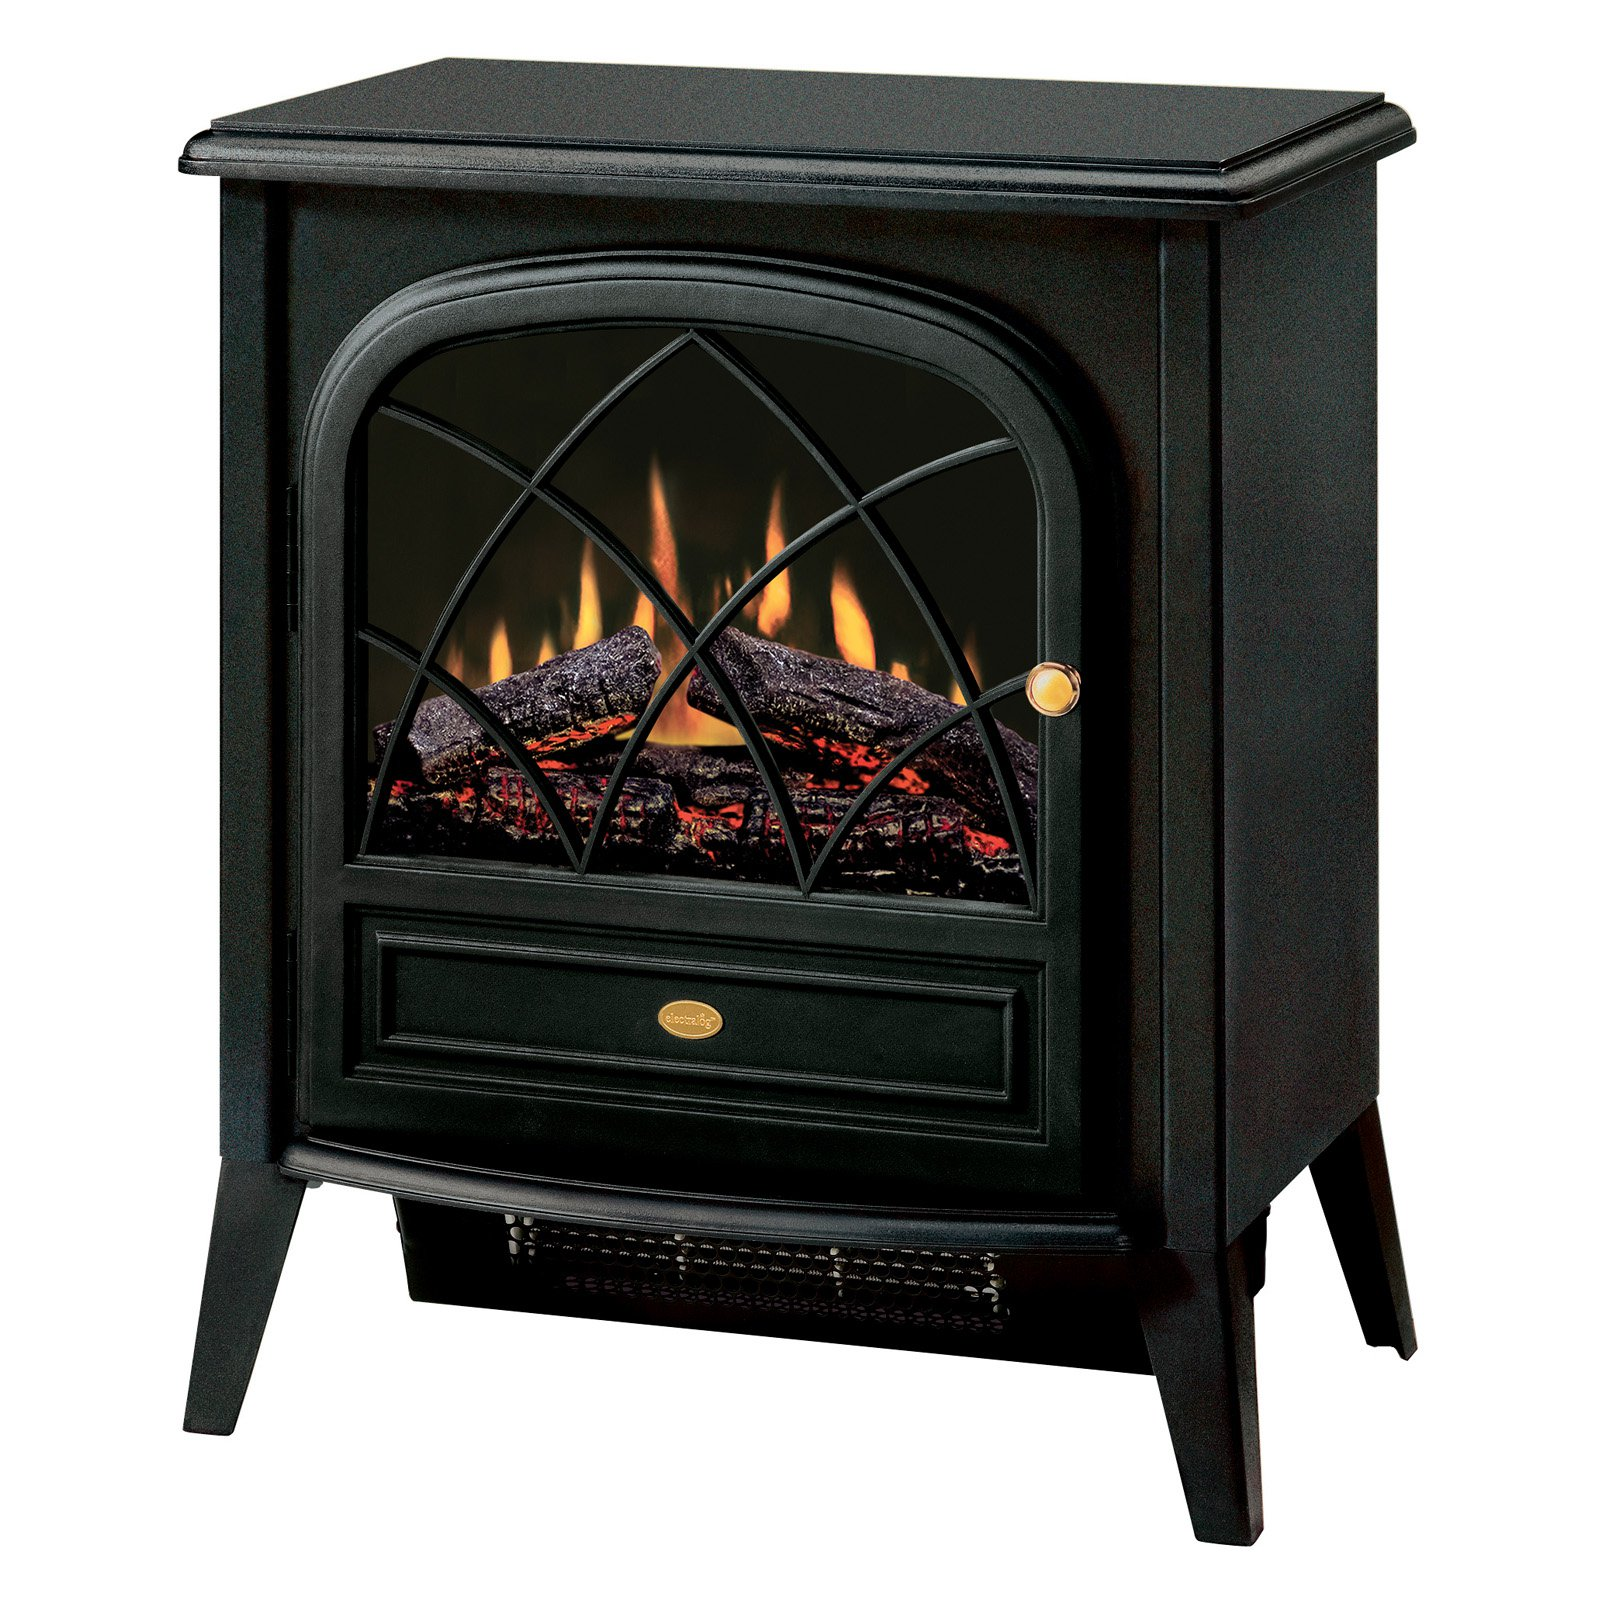 Dimplex Midsize Electric Flame Stove